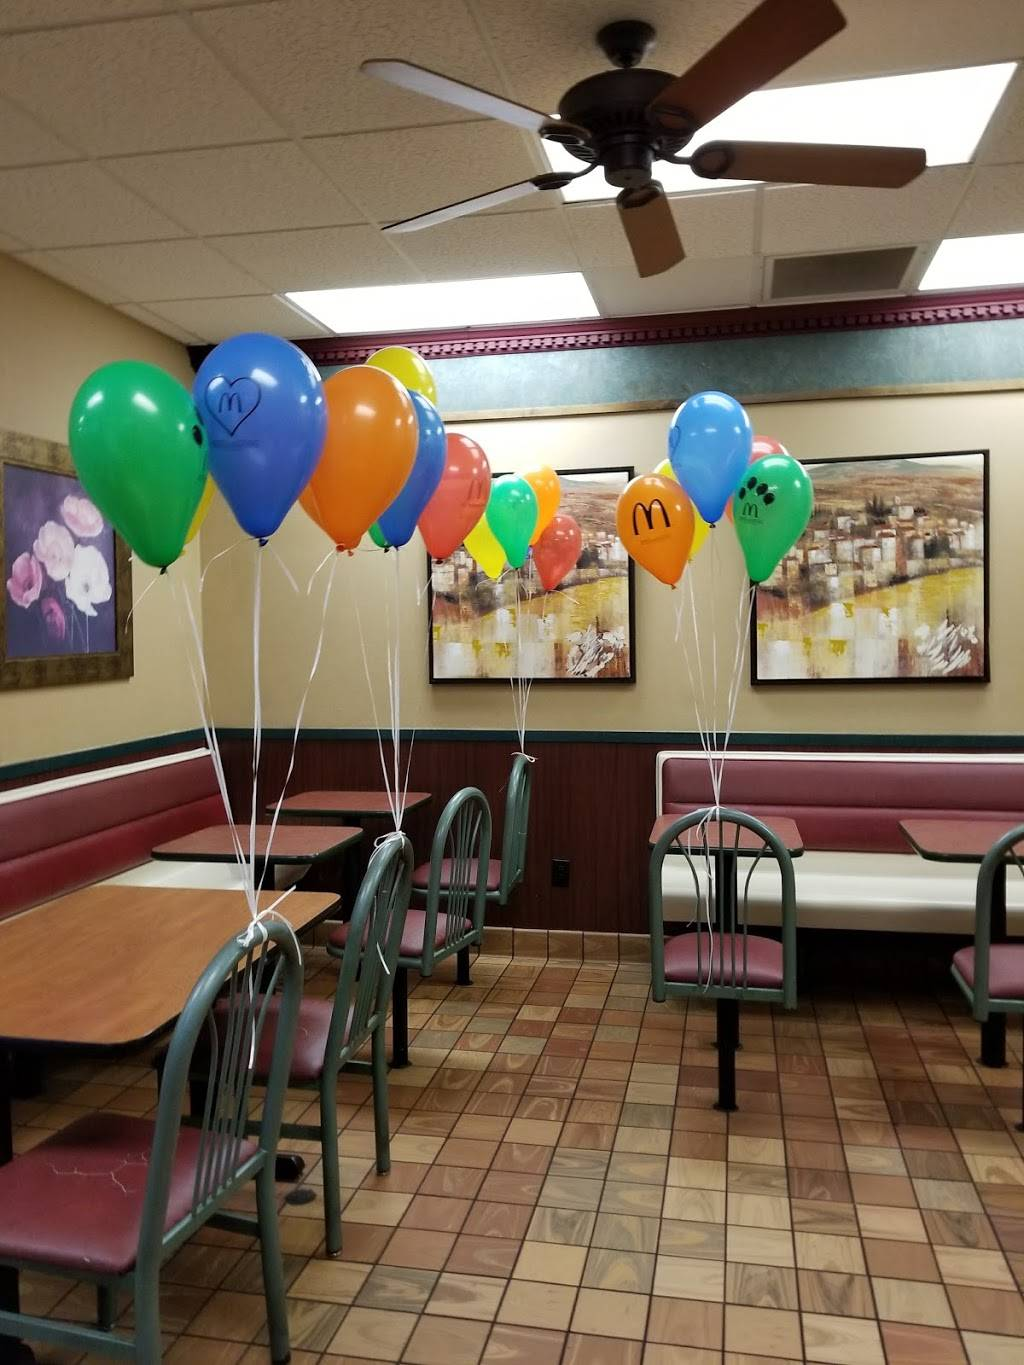 McDonalds | cafe | 8211 Snowden River Pkwy, Columbia, MD 21045, USA | 4107507975 OR +1 410-750-7975